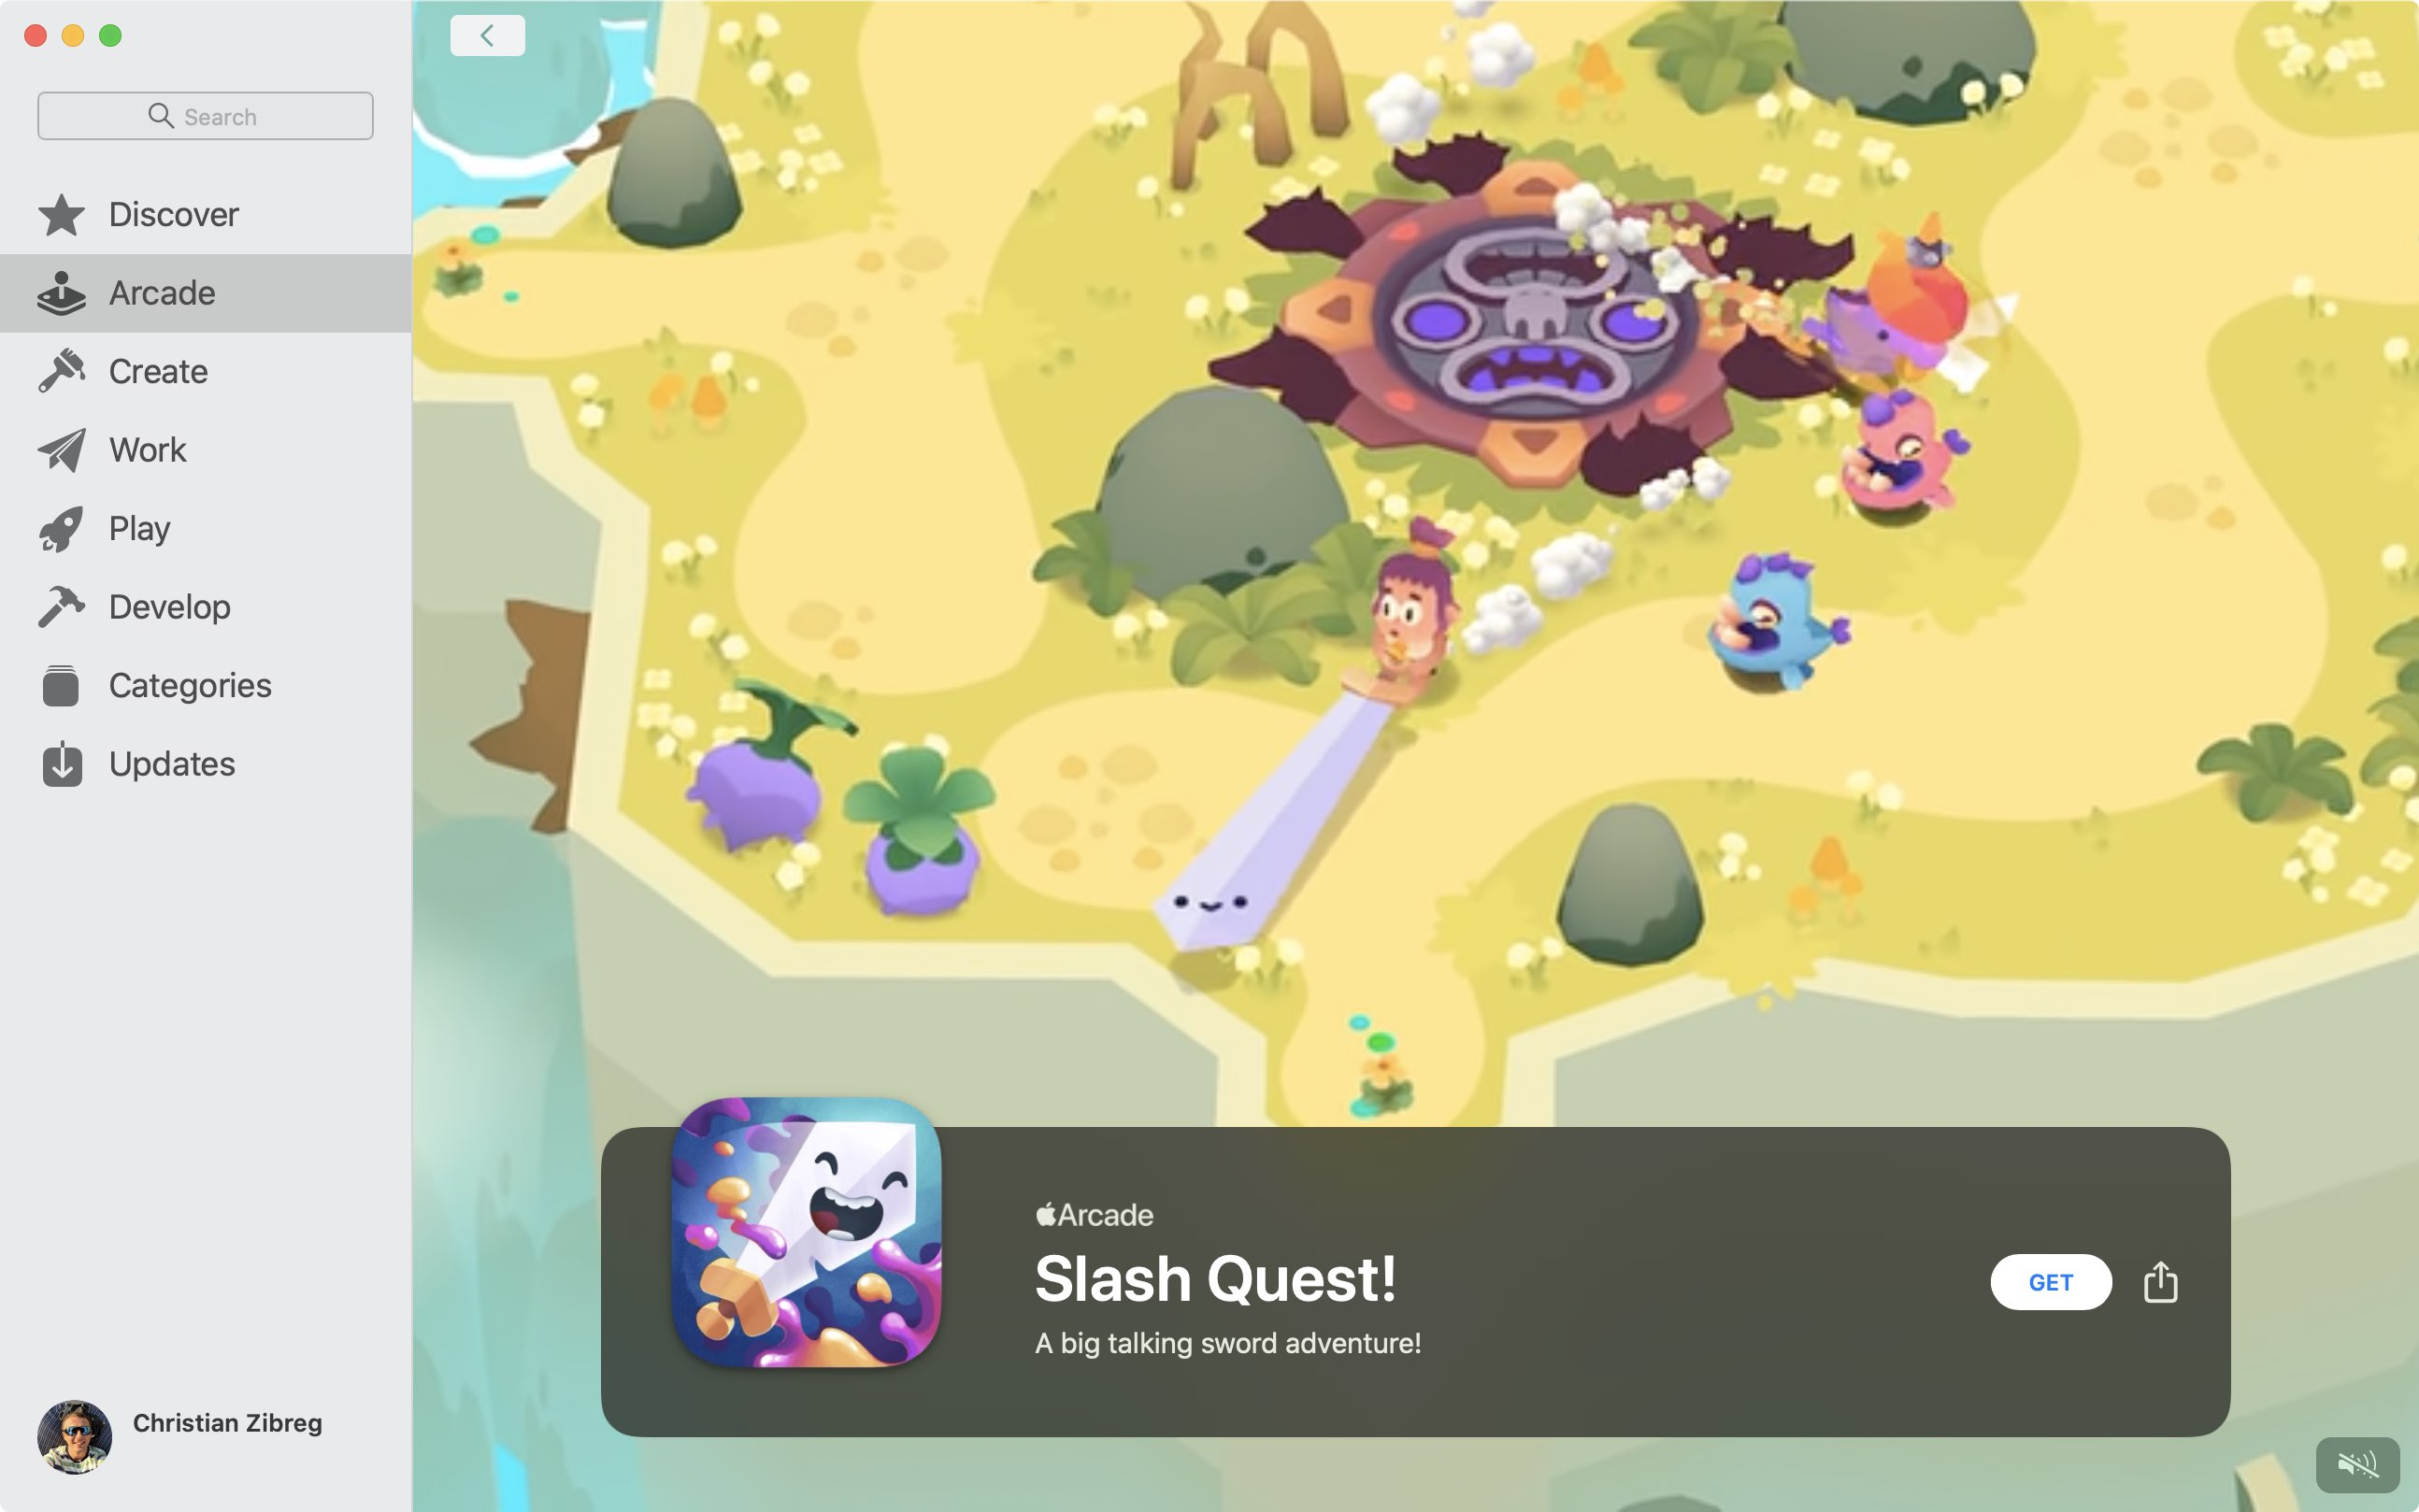 """The new adventure game """"Slash Quest!"""" featuring a talking sword hits Apple Arcade"""